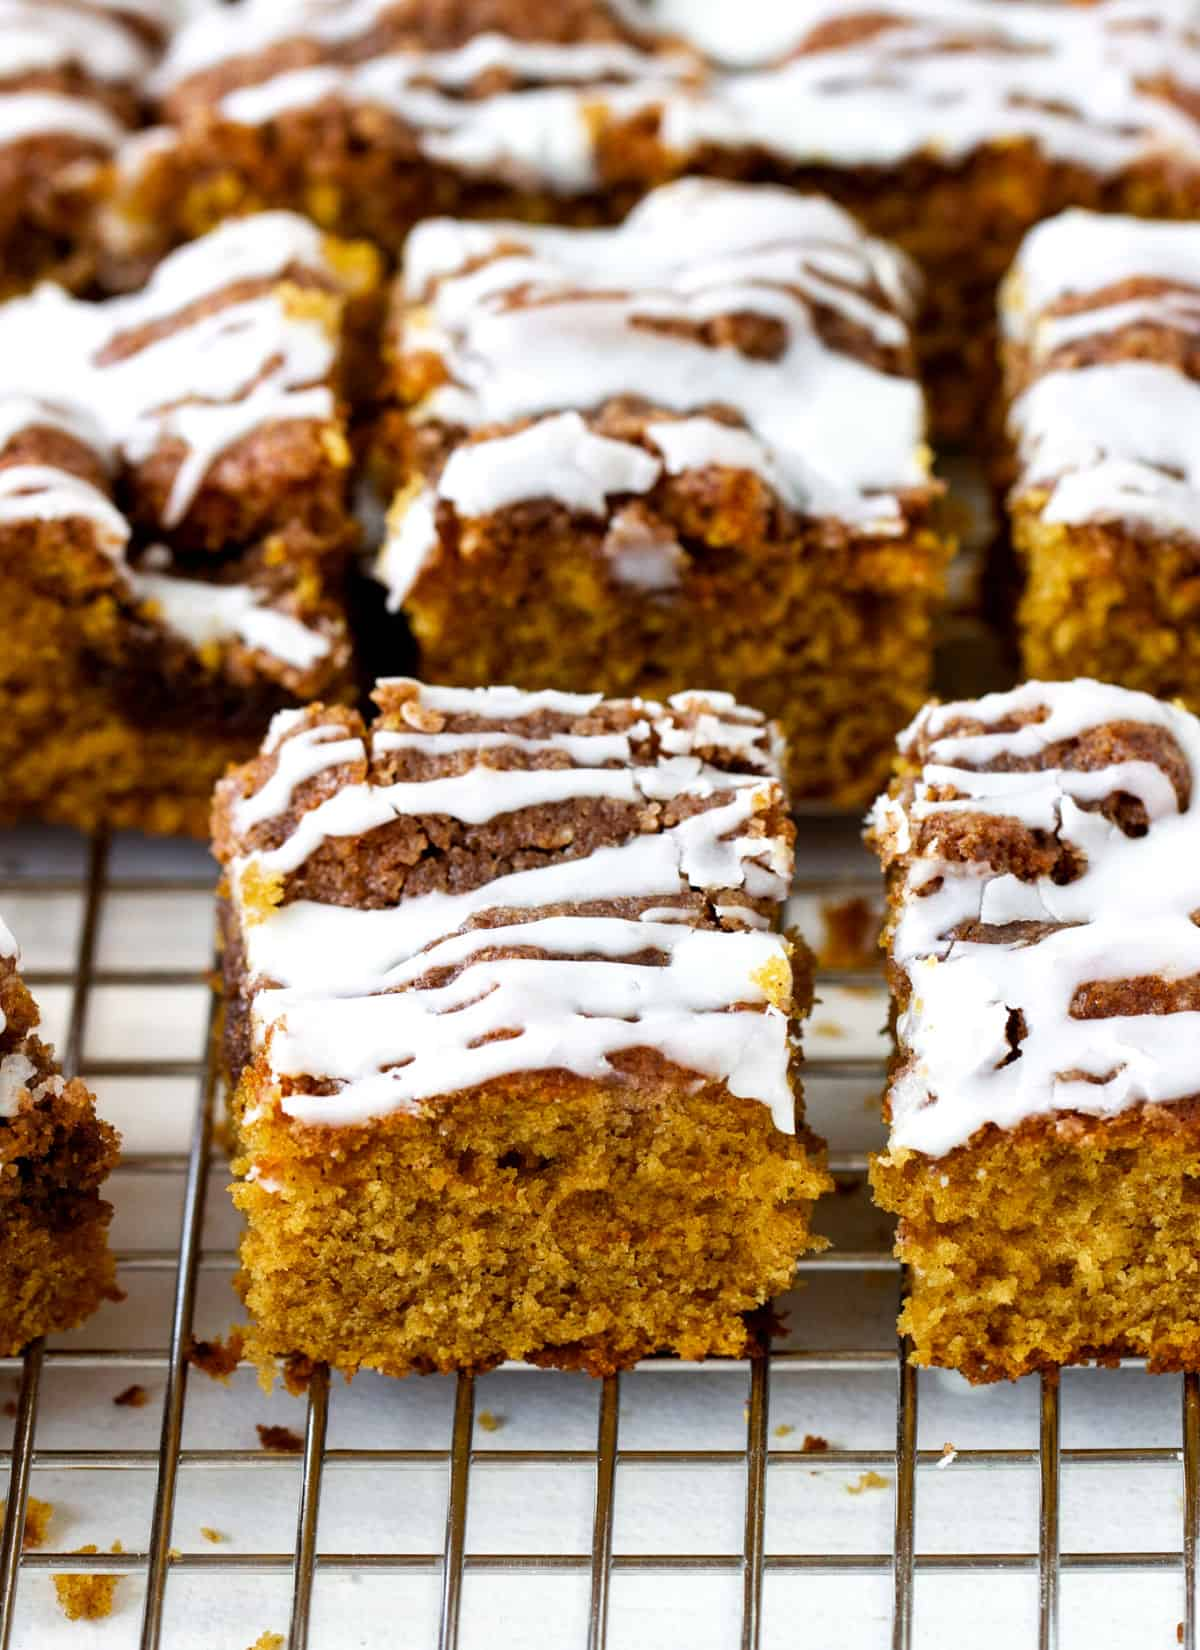 Rows of glazed squares of pumpkin cake on wire rack